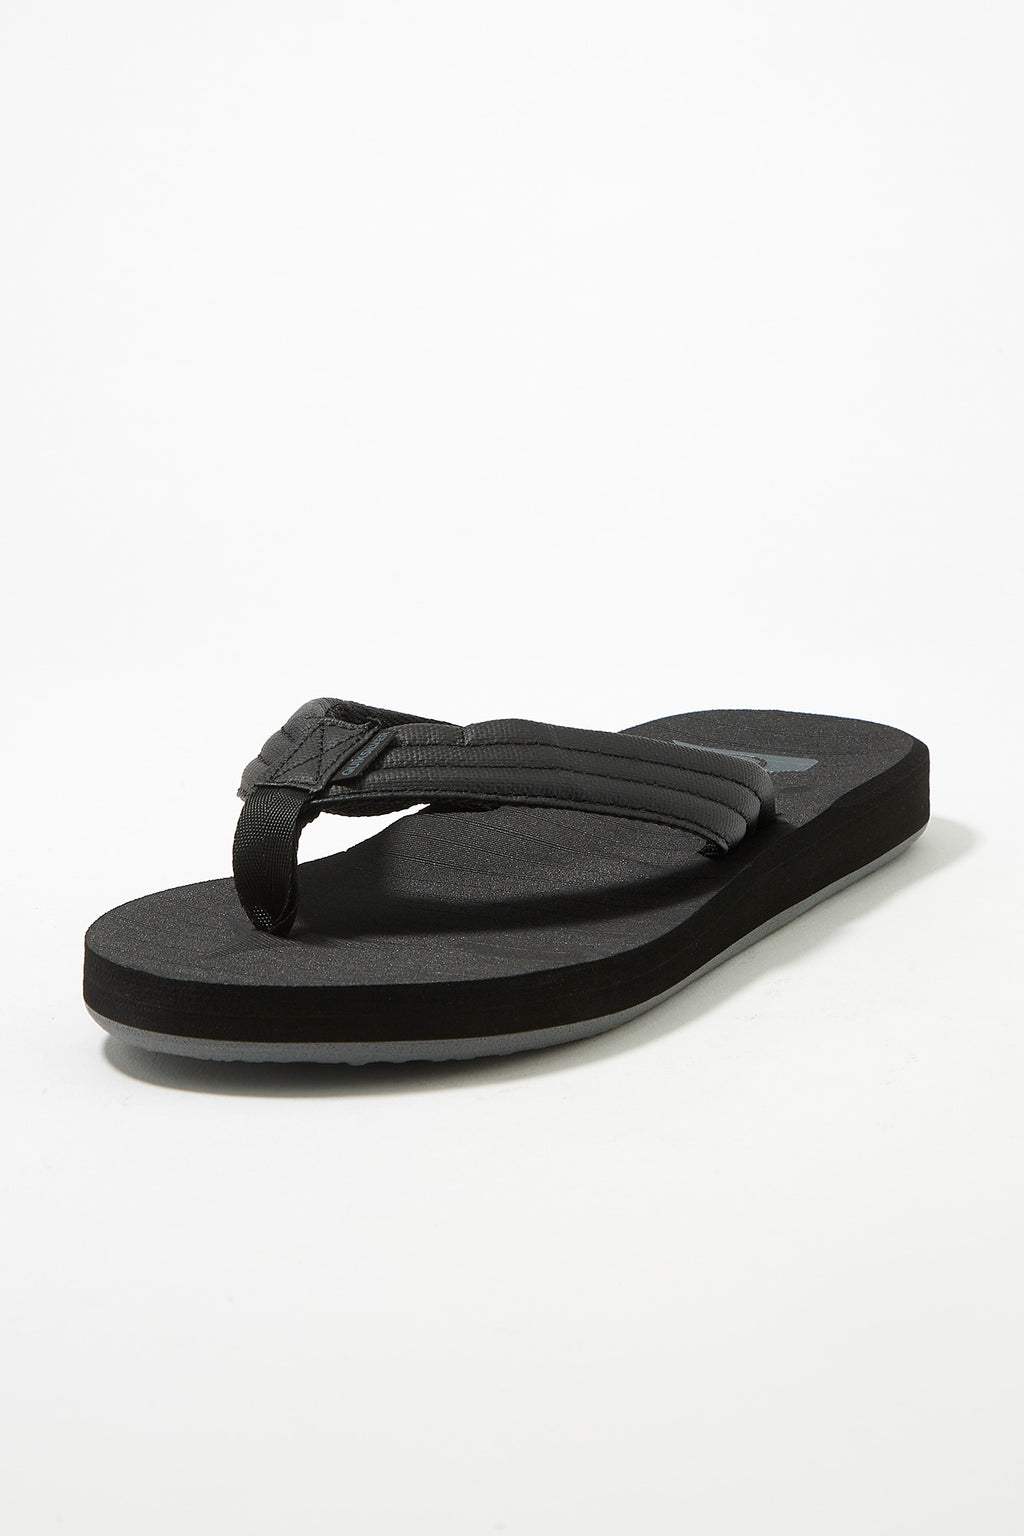 Quiksilver Mens Carver Tropics Sandals